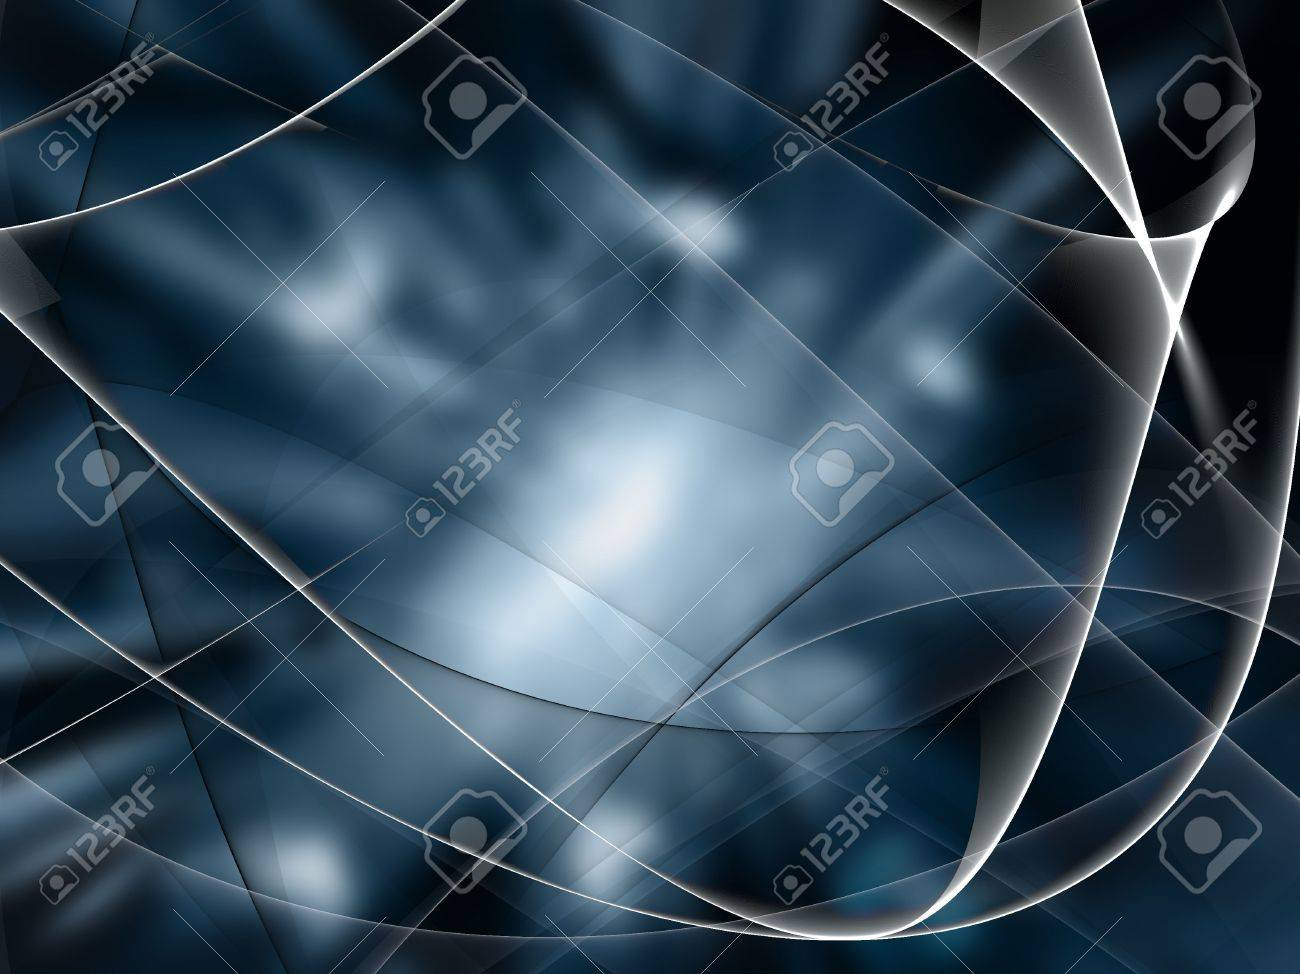 abstract graphic art wallpaper background computer CG Stock Photo - 670892